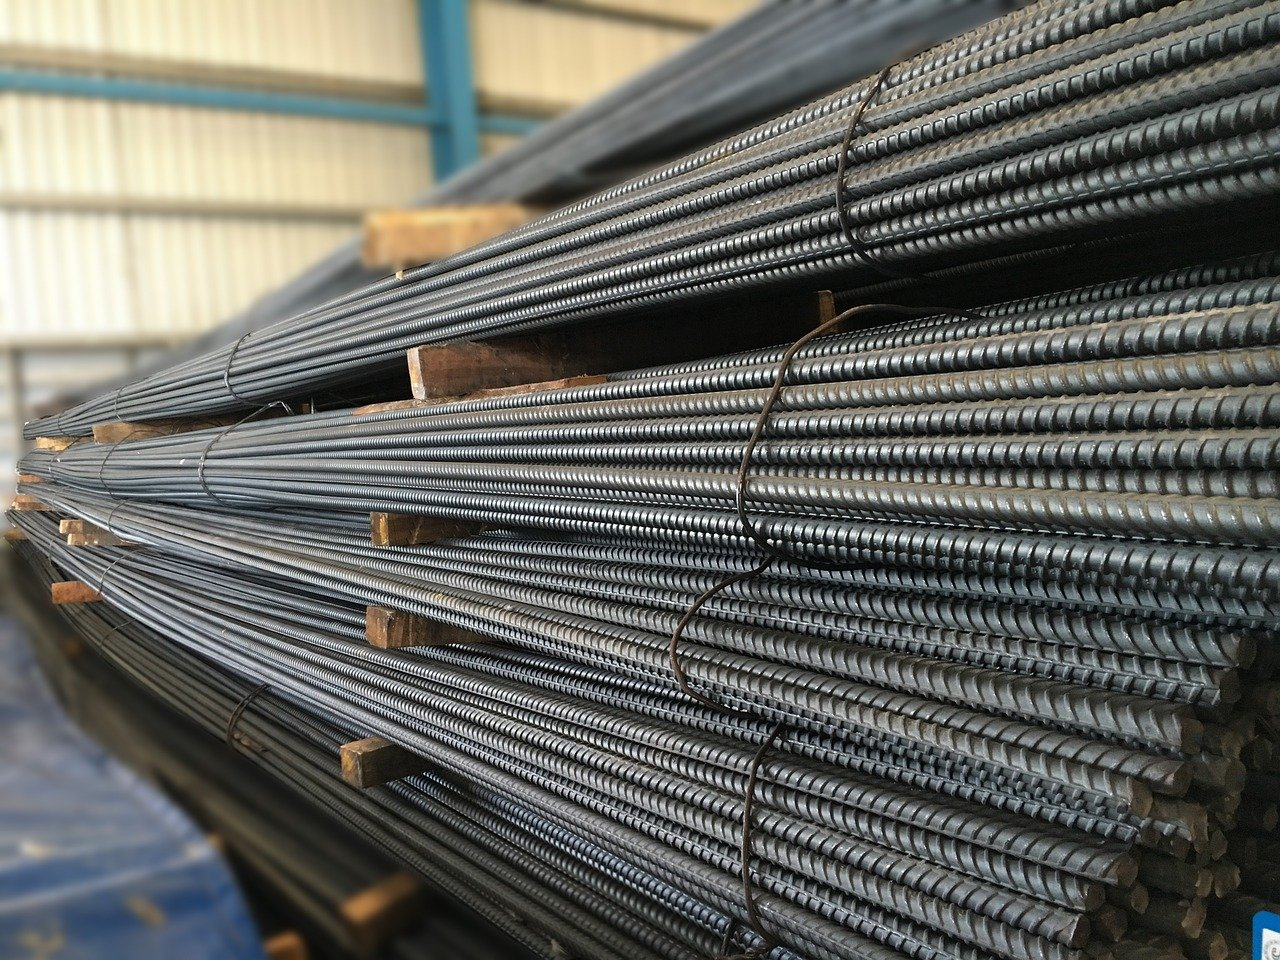 Chinese rebar recovers on demand